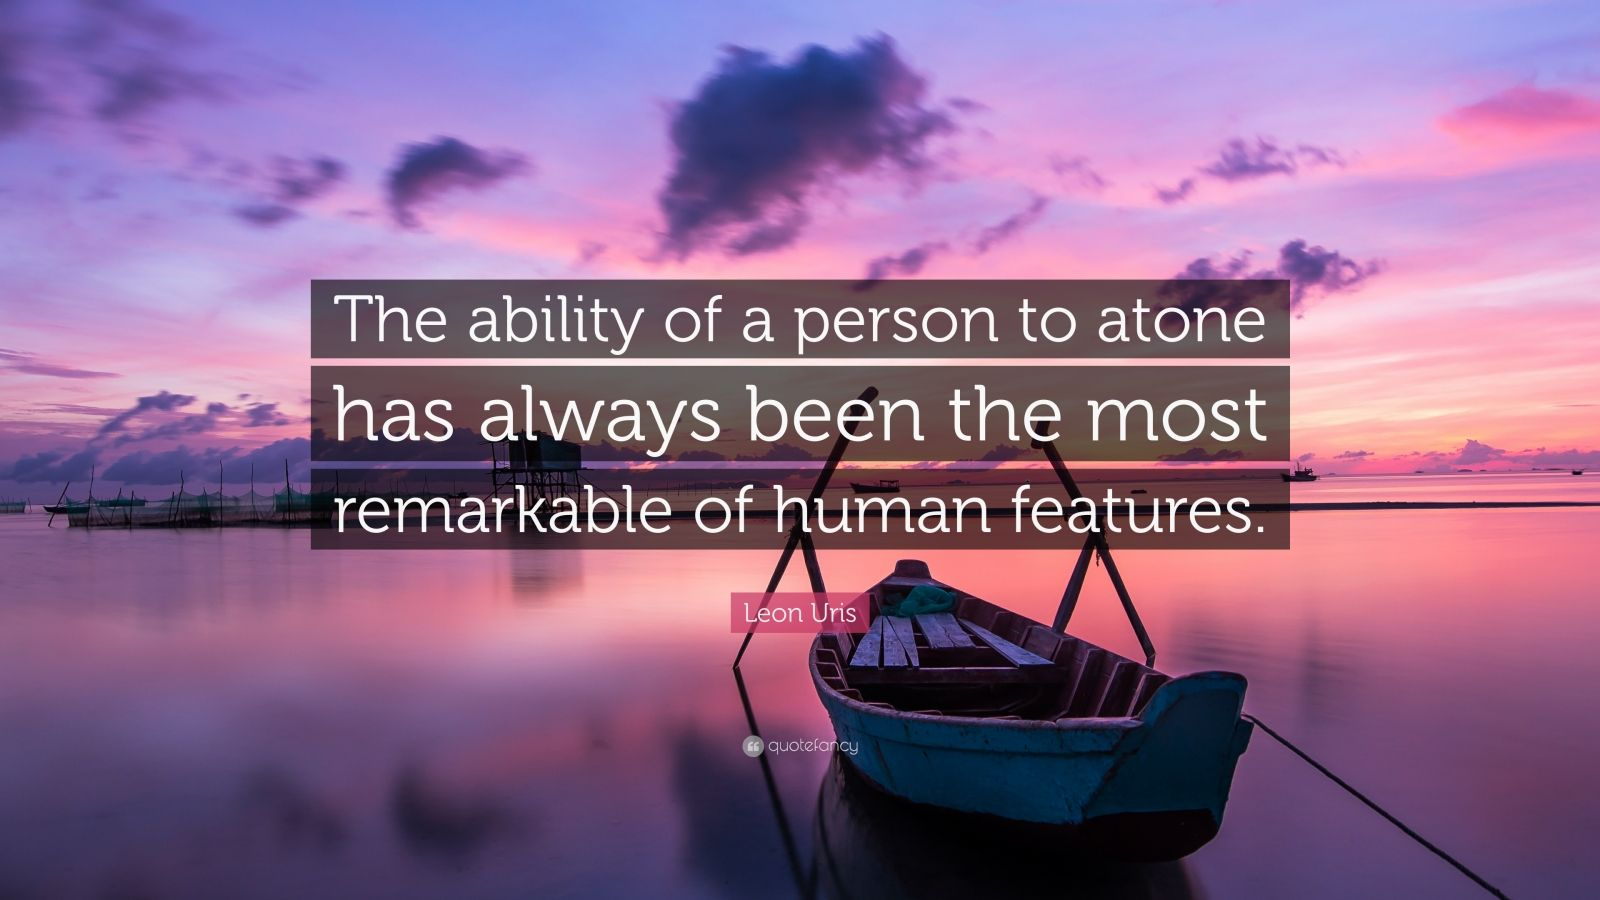 """Leon Uris Quote: """"The ability of a person to atone has always been the most remarkable of human features."""""""